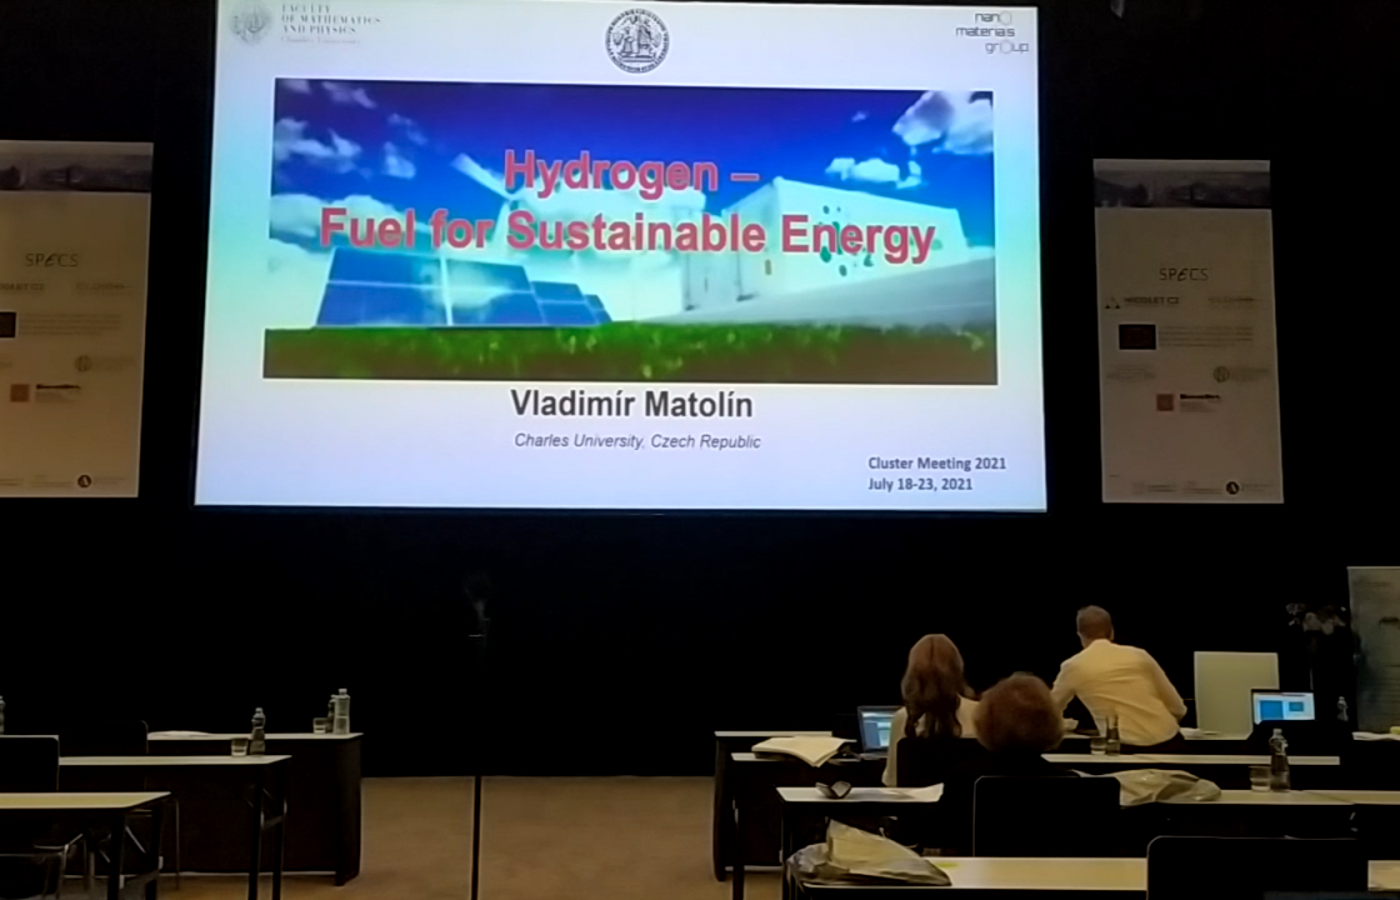 Professor Vladimír Matolín has an invited lecture at Cluster Meeting 2021